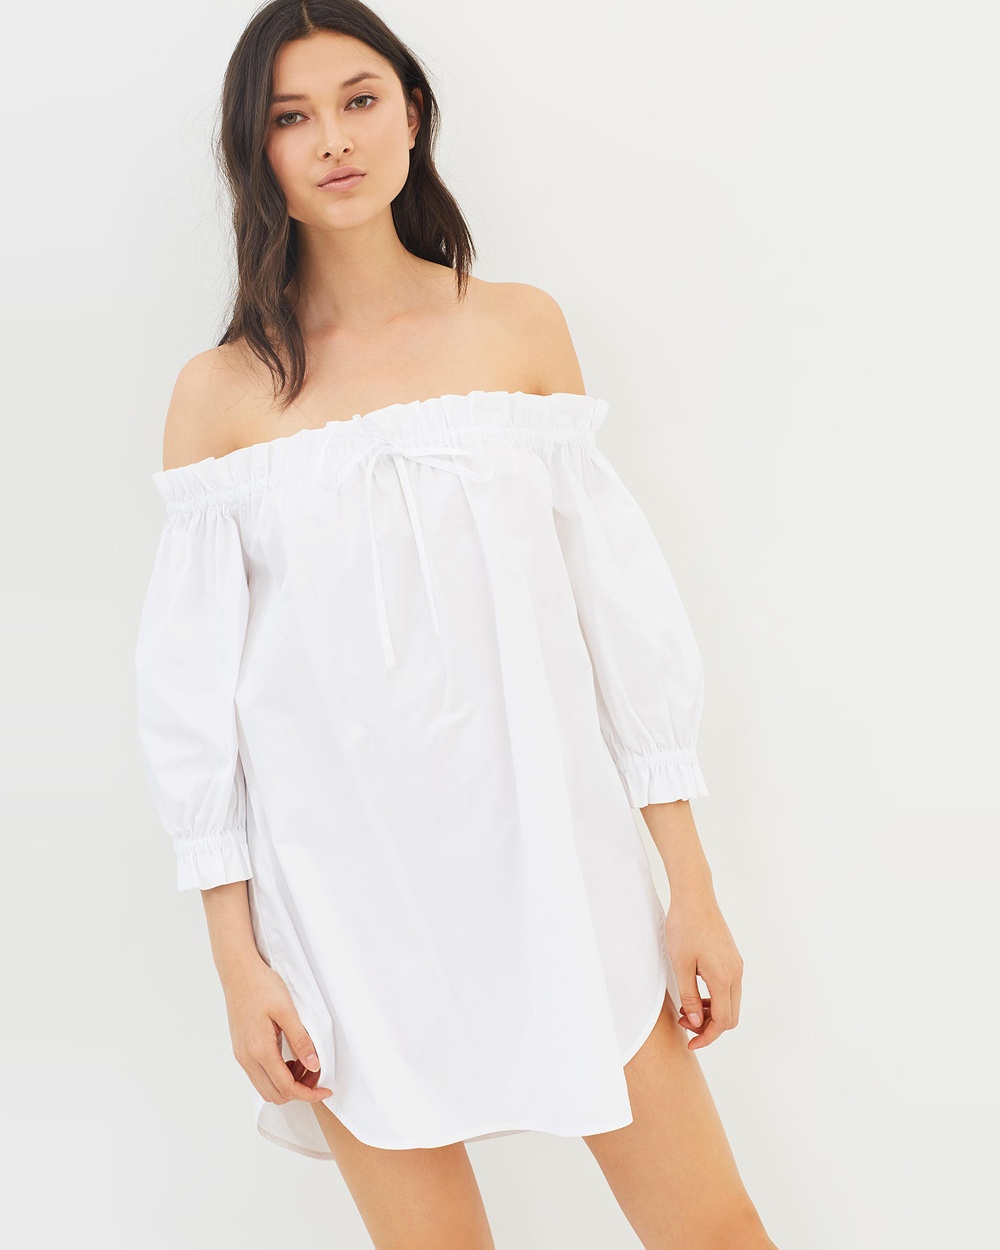 Maurie & Eve Marcello Dress Dresses White Marcello Dress